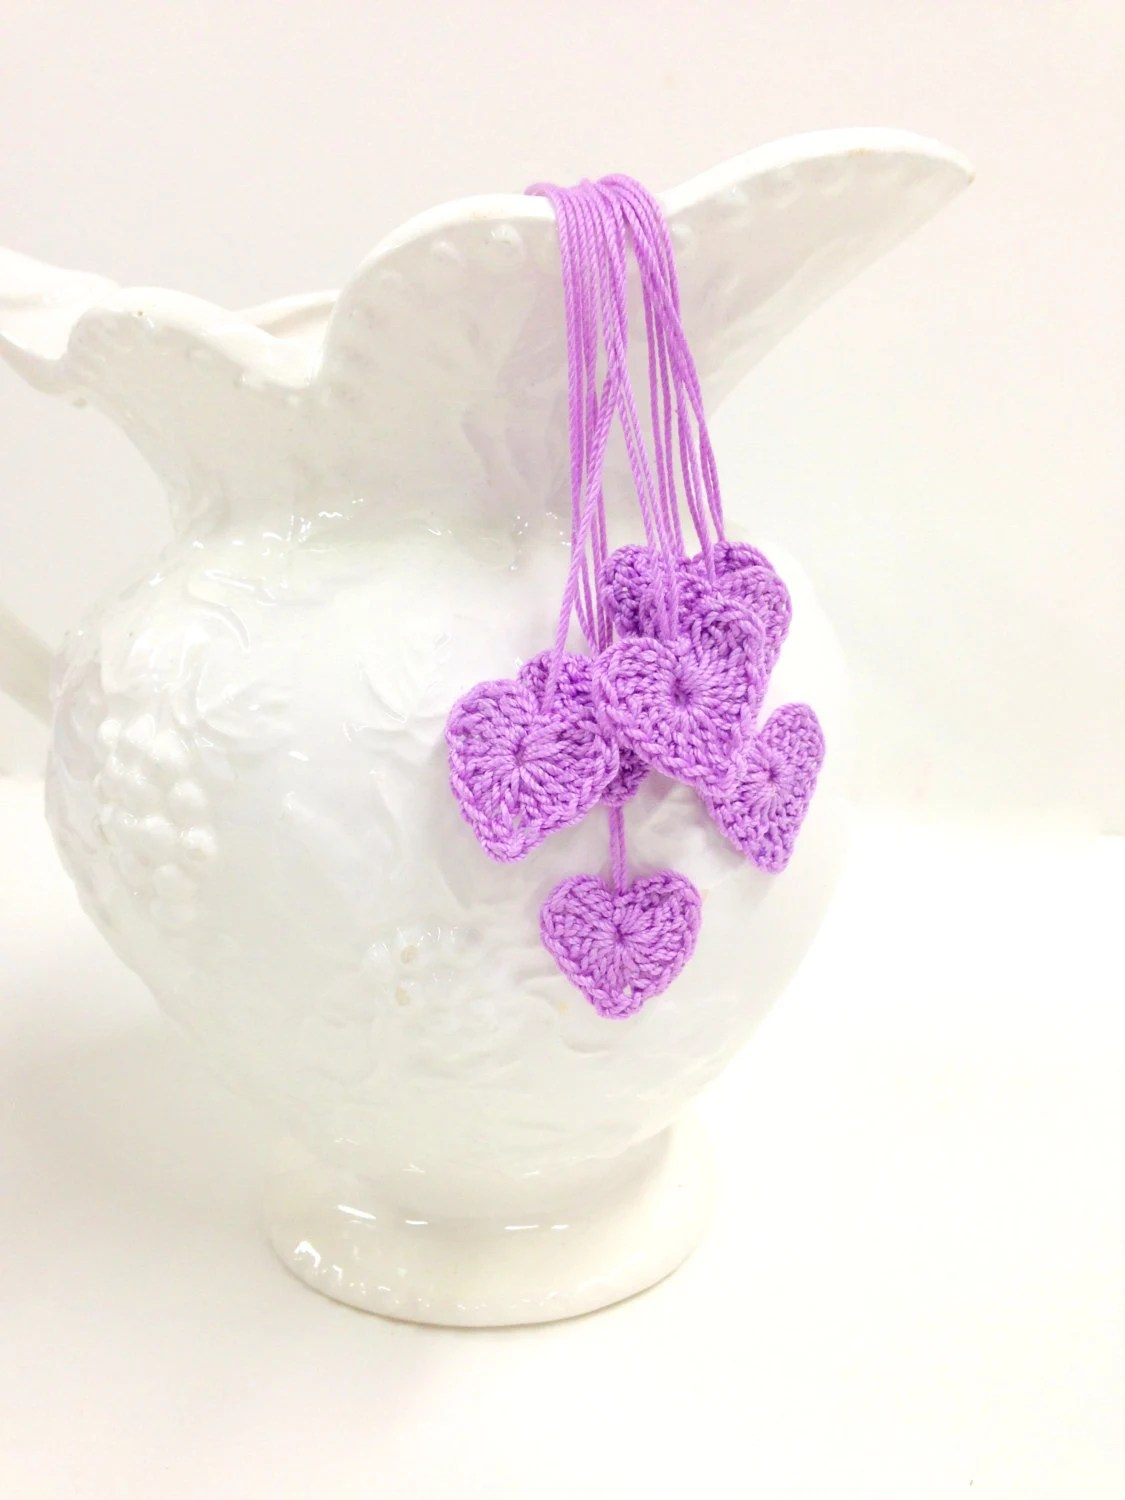 Radiant Orchid Heart Motifs, 7 Tiny Crochet Hearts, Wedding Decor, Romance, Love - StitchKnit